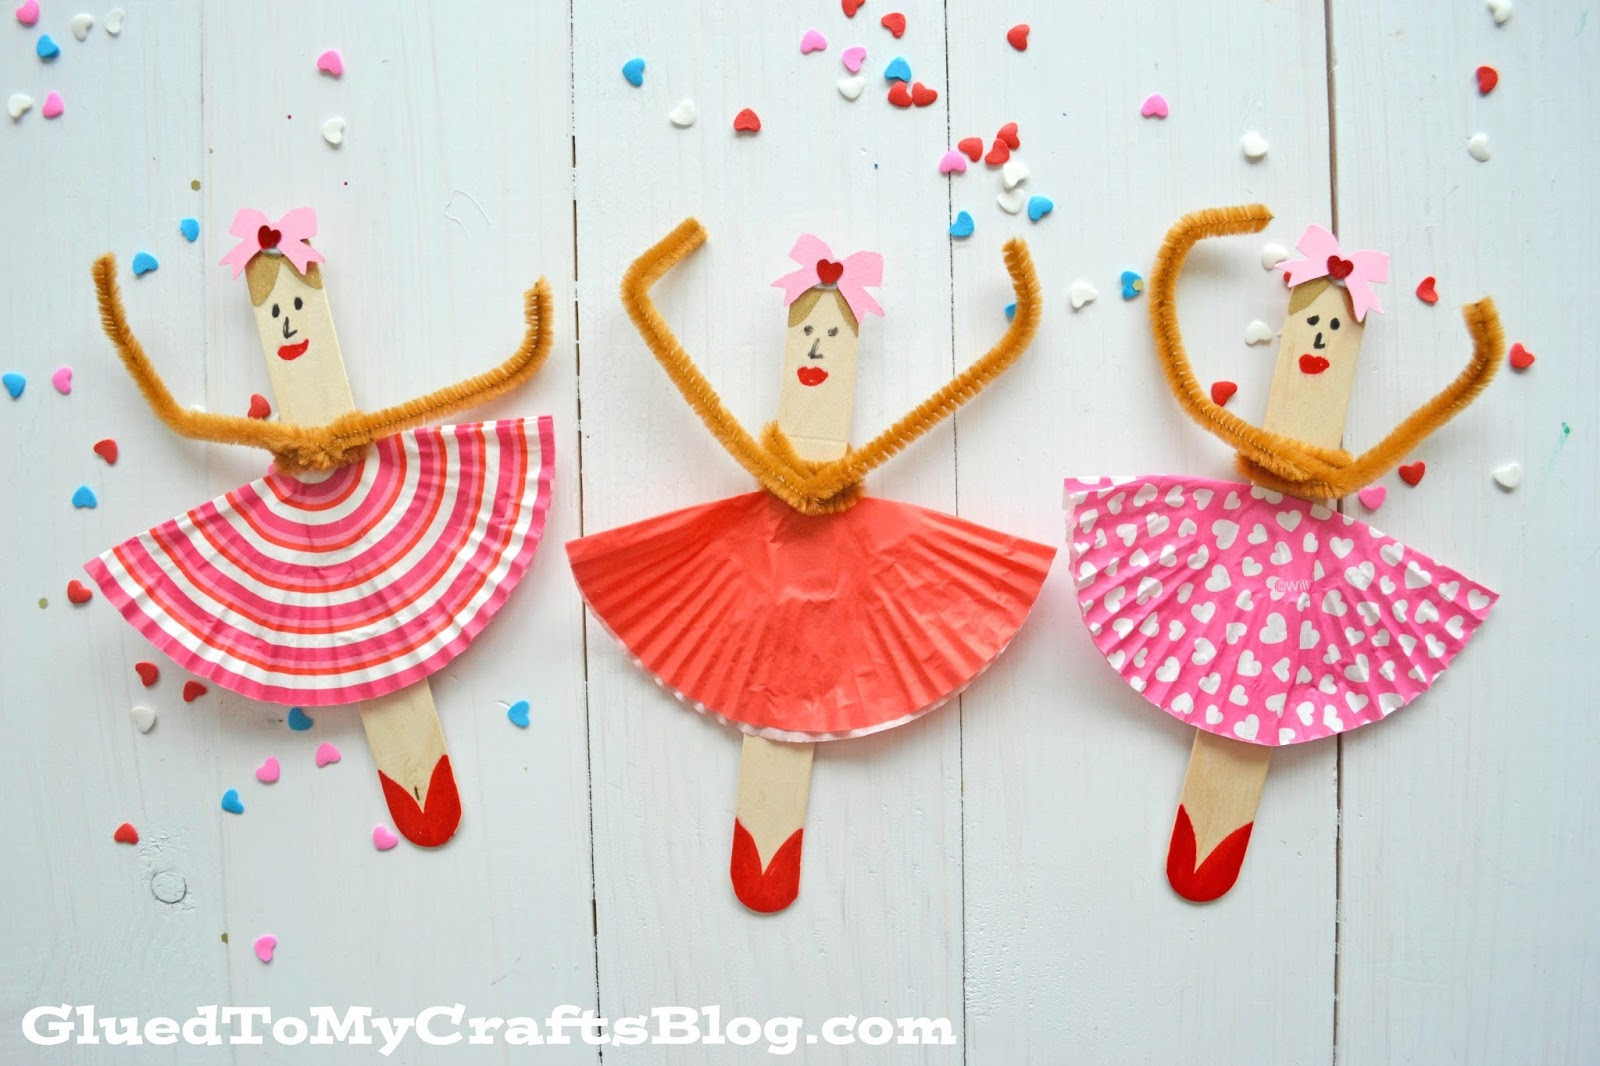 Best ideas about Kids Craft Projects . Save or Pin 20 Cutest and Super Fun Popsicle Stick Crafts Now.